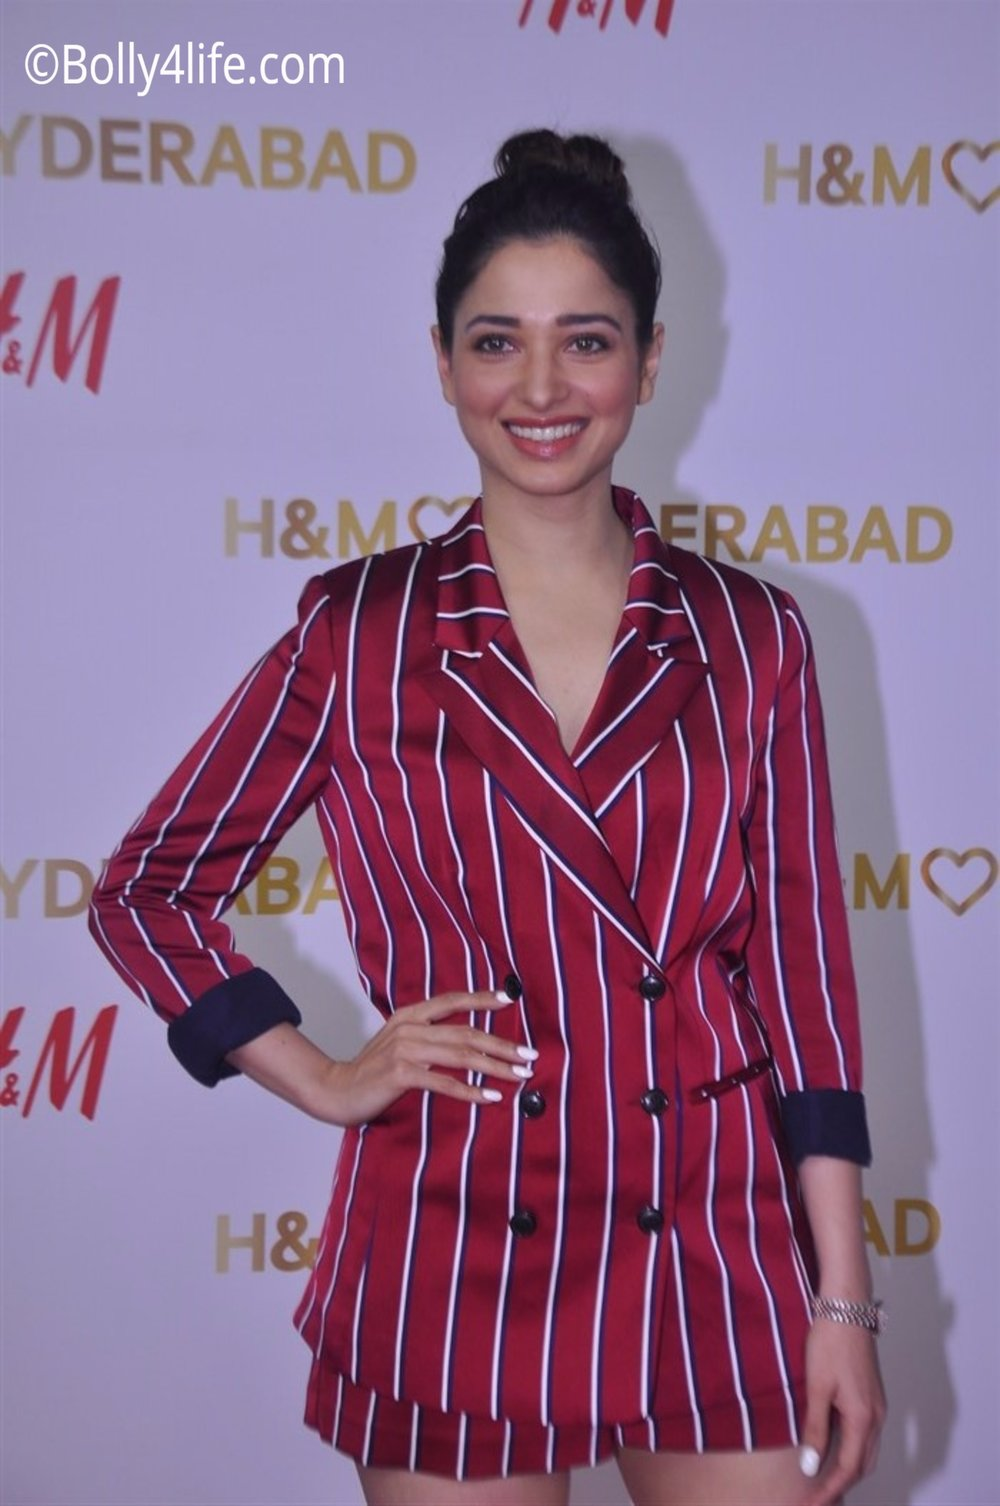 actress-hms-vip-party-inorbit-mall-hyderabad-2db7ae0.jpg